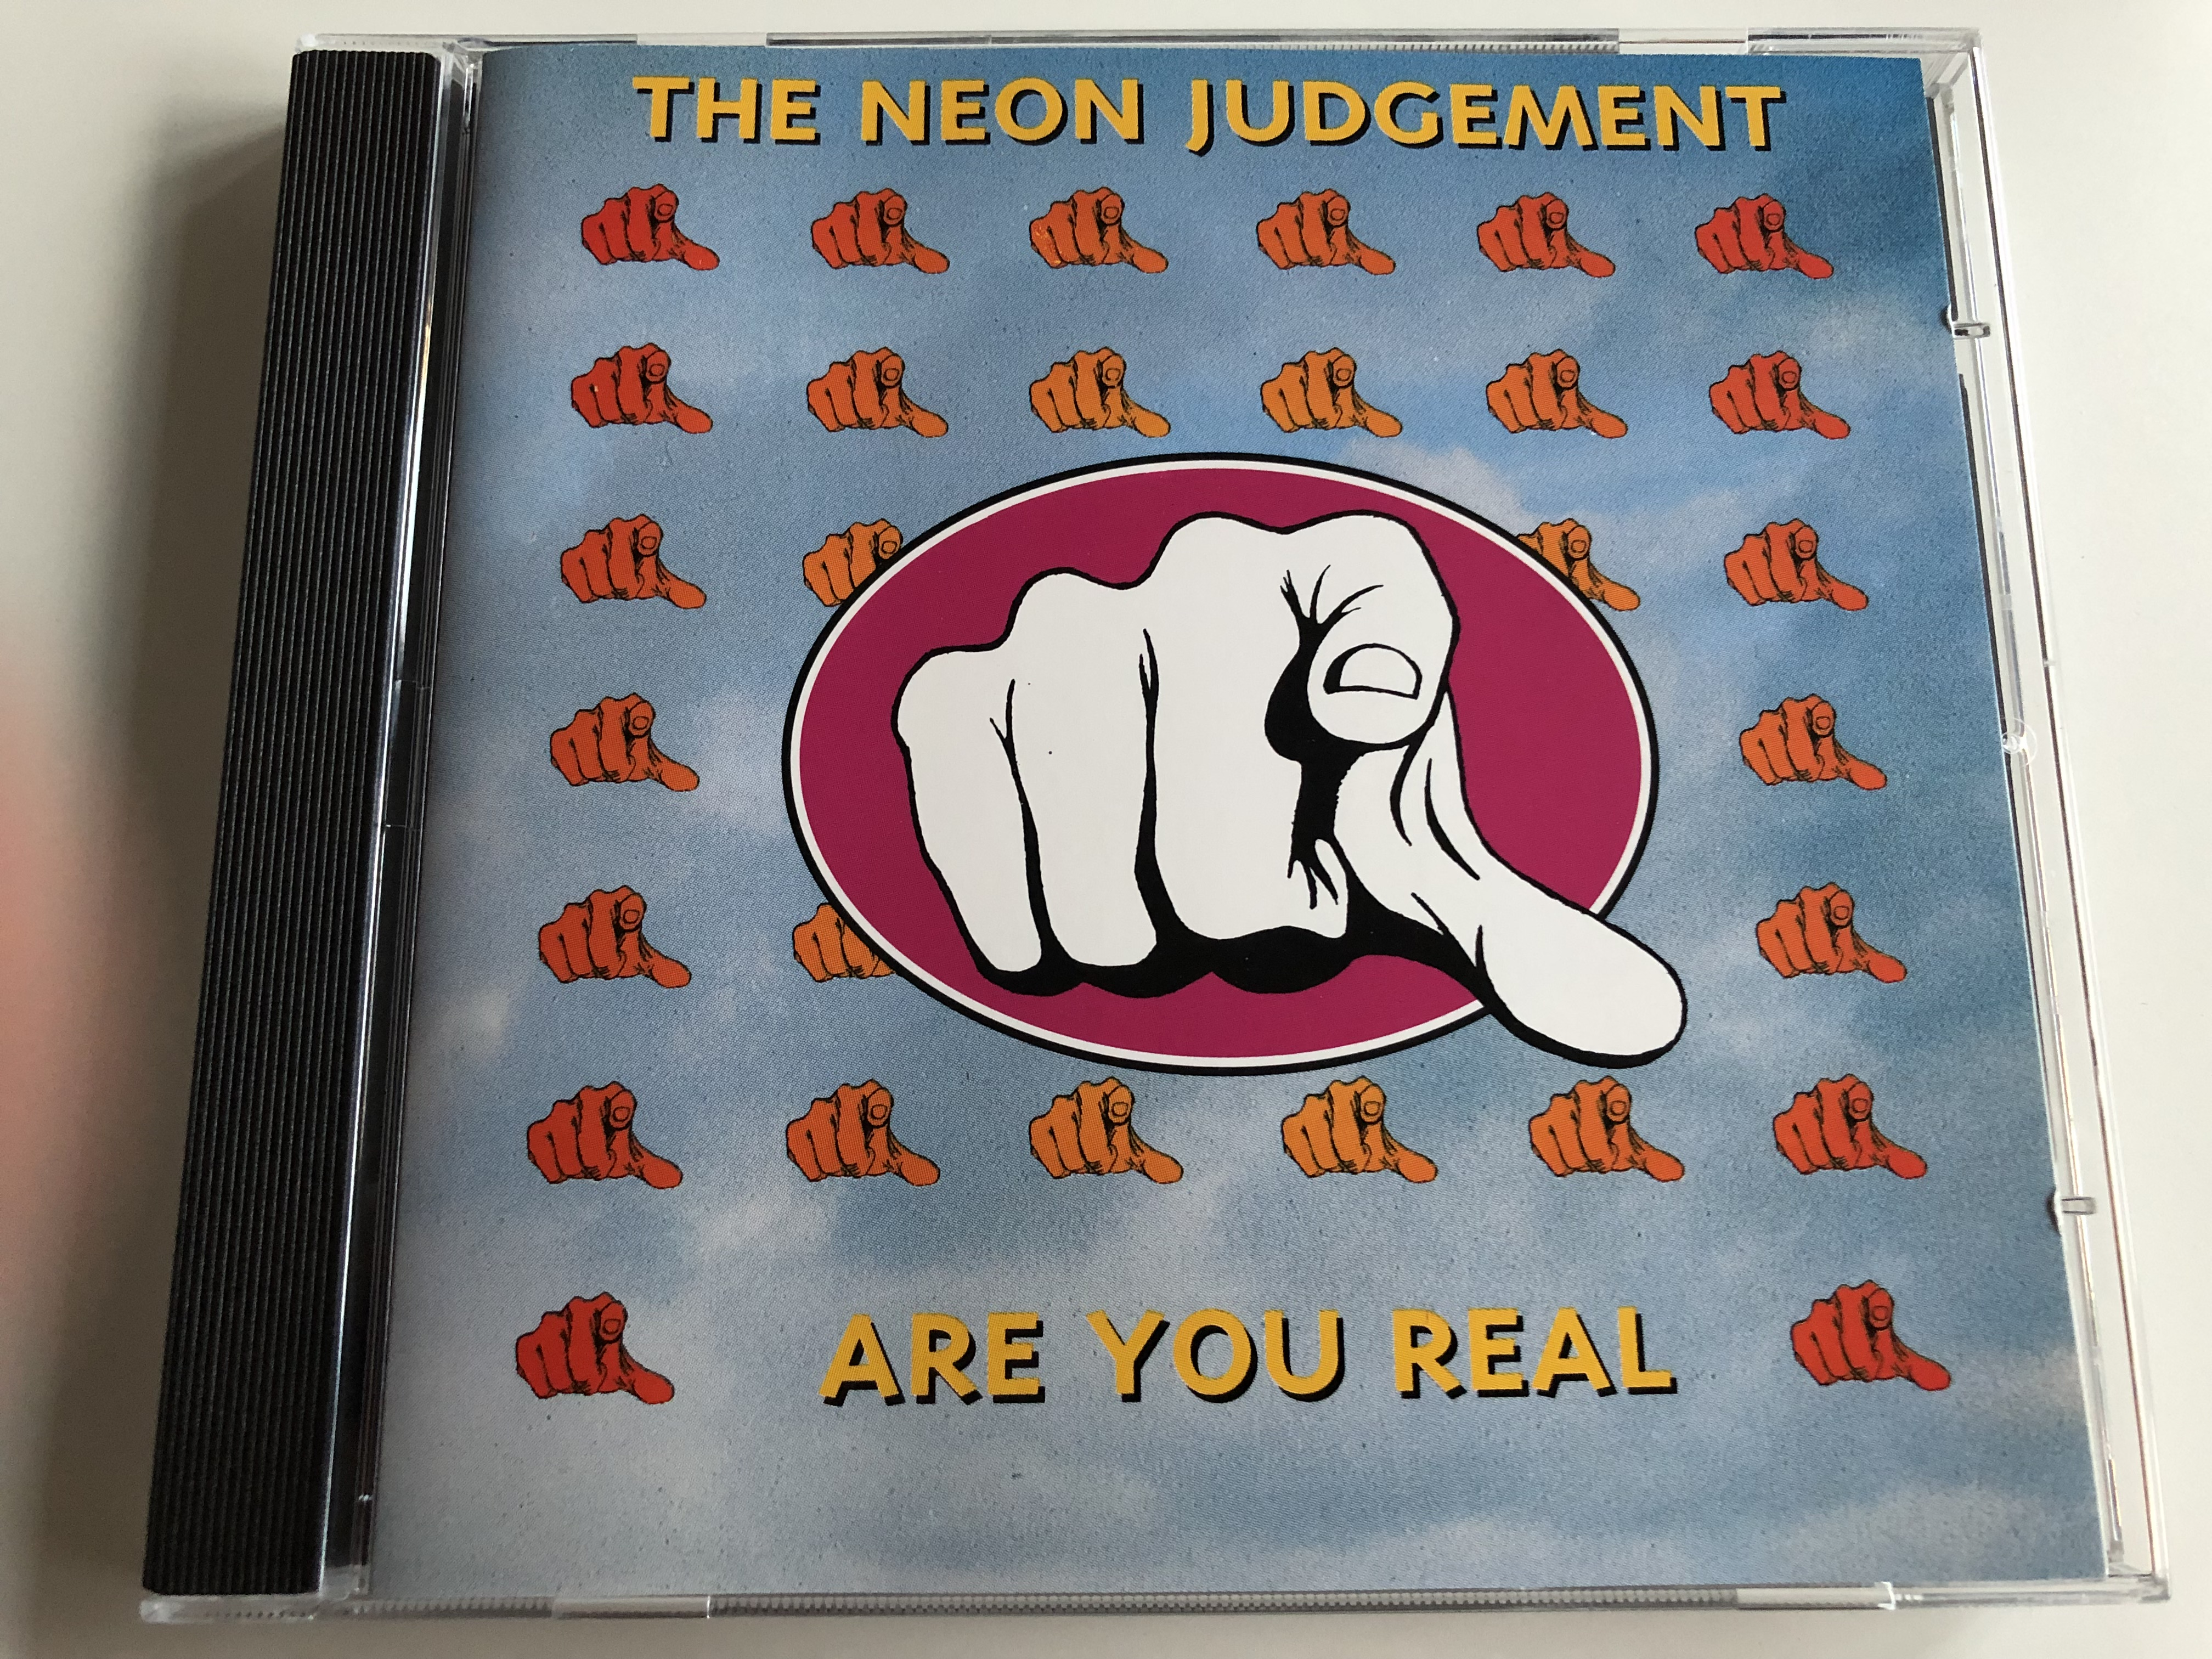 the-neon-judgement-are-you-real-play-it-again-sam-records-audio-cd-bias-204-cd-1-.jpg